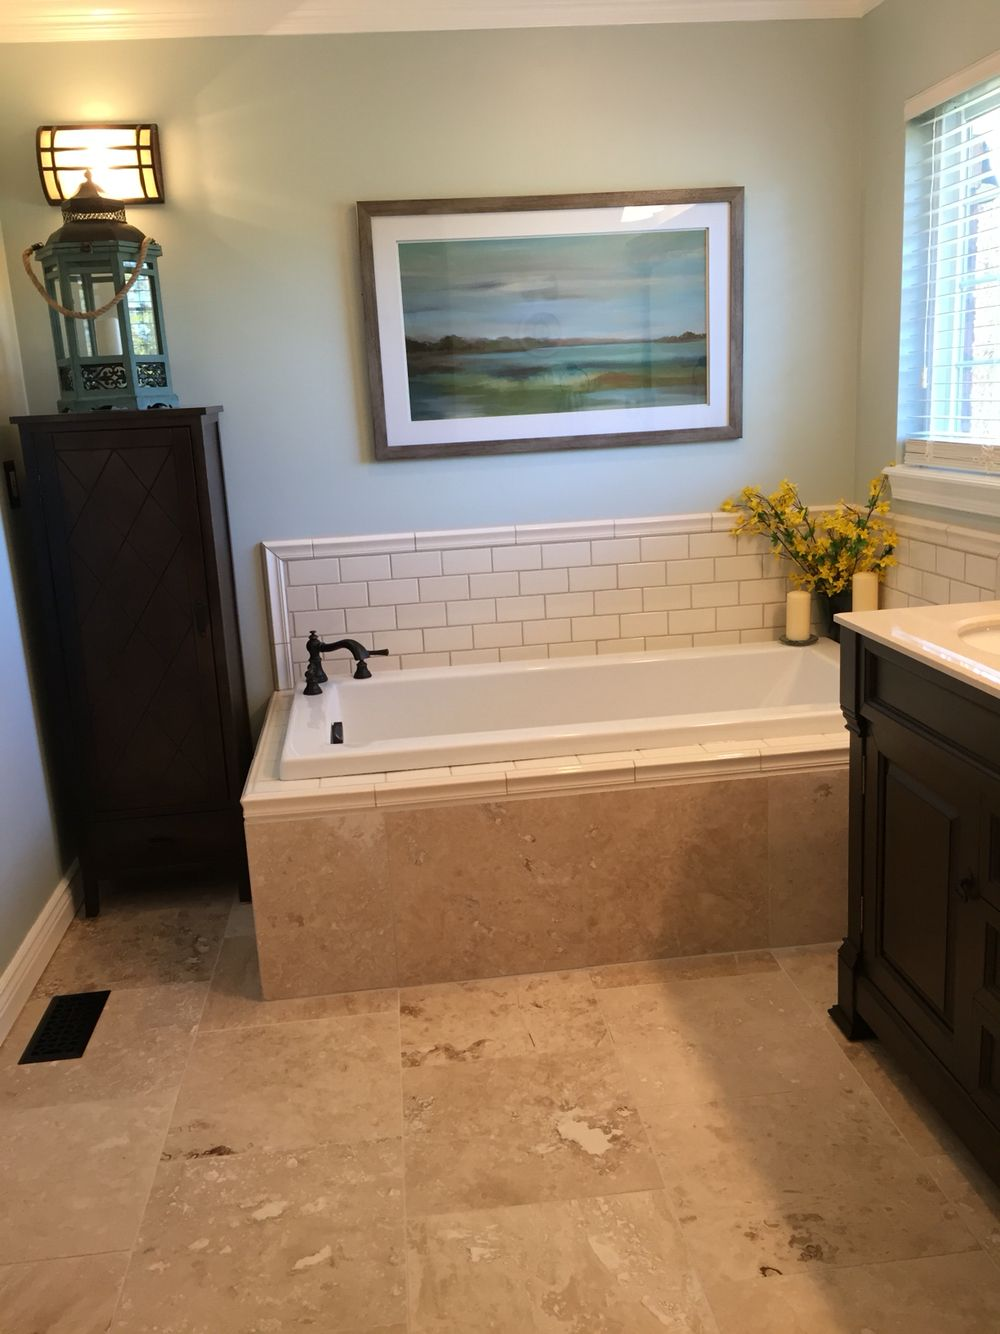 Sherwin Williams Sea Salt paint with Travertine 18 floor tile and